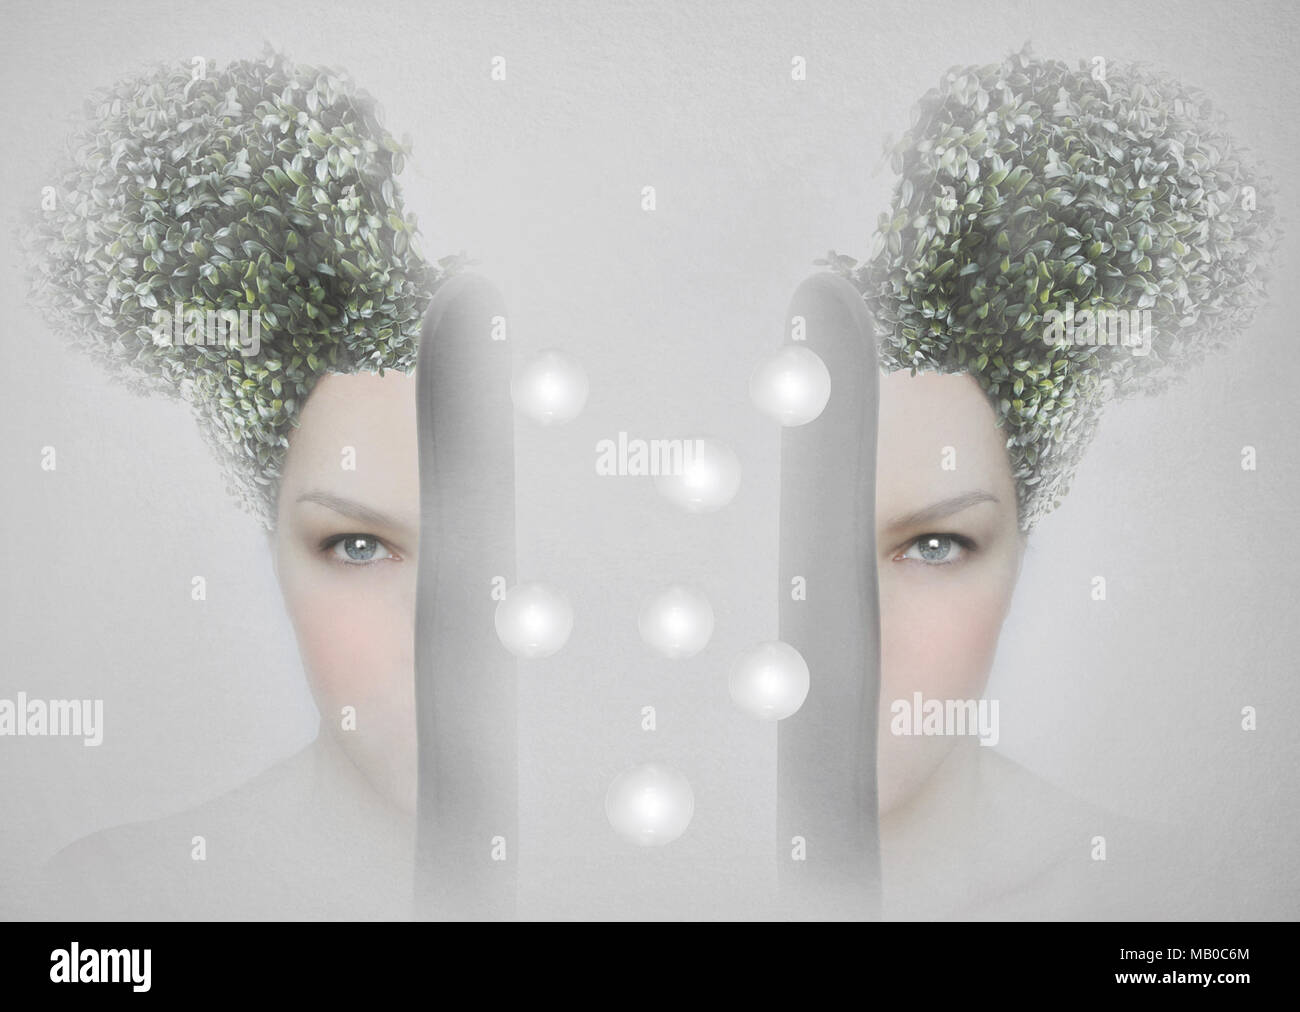 Female artistic portrait divided in two parts, surreal concept - Stock Image